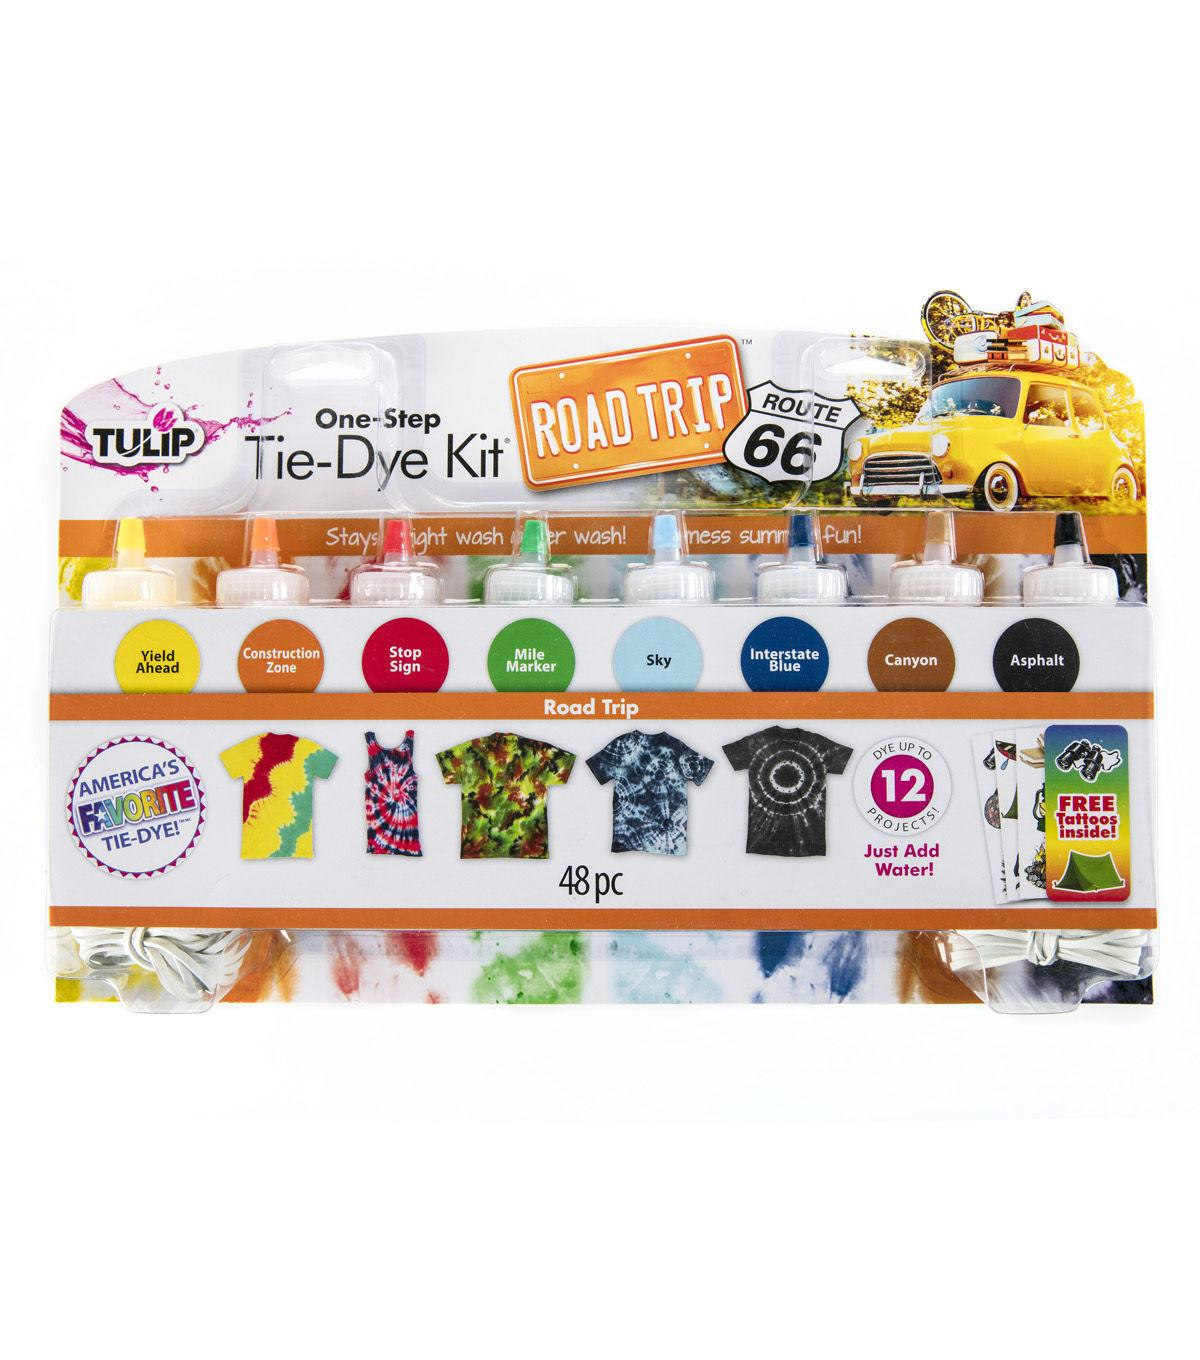 Create and craft coupons - Tulip One Step Tie Dye Kit Road Trip